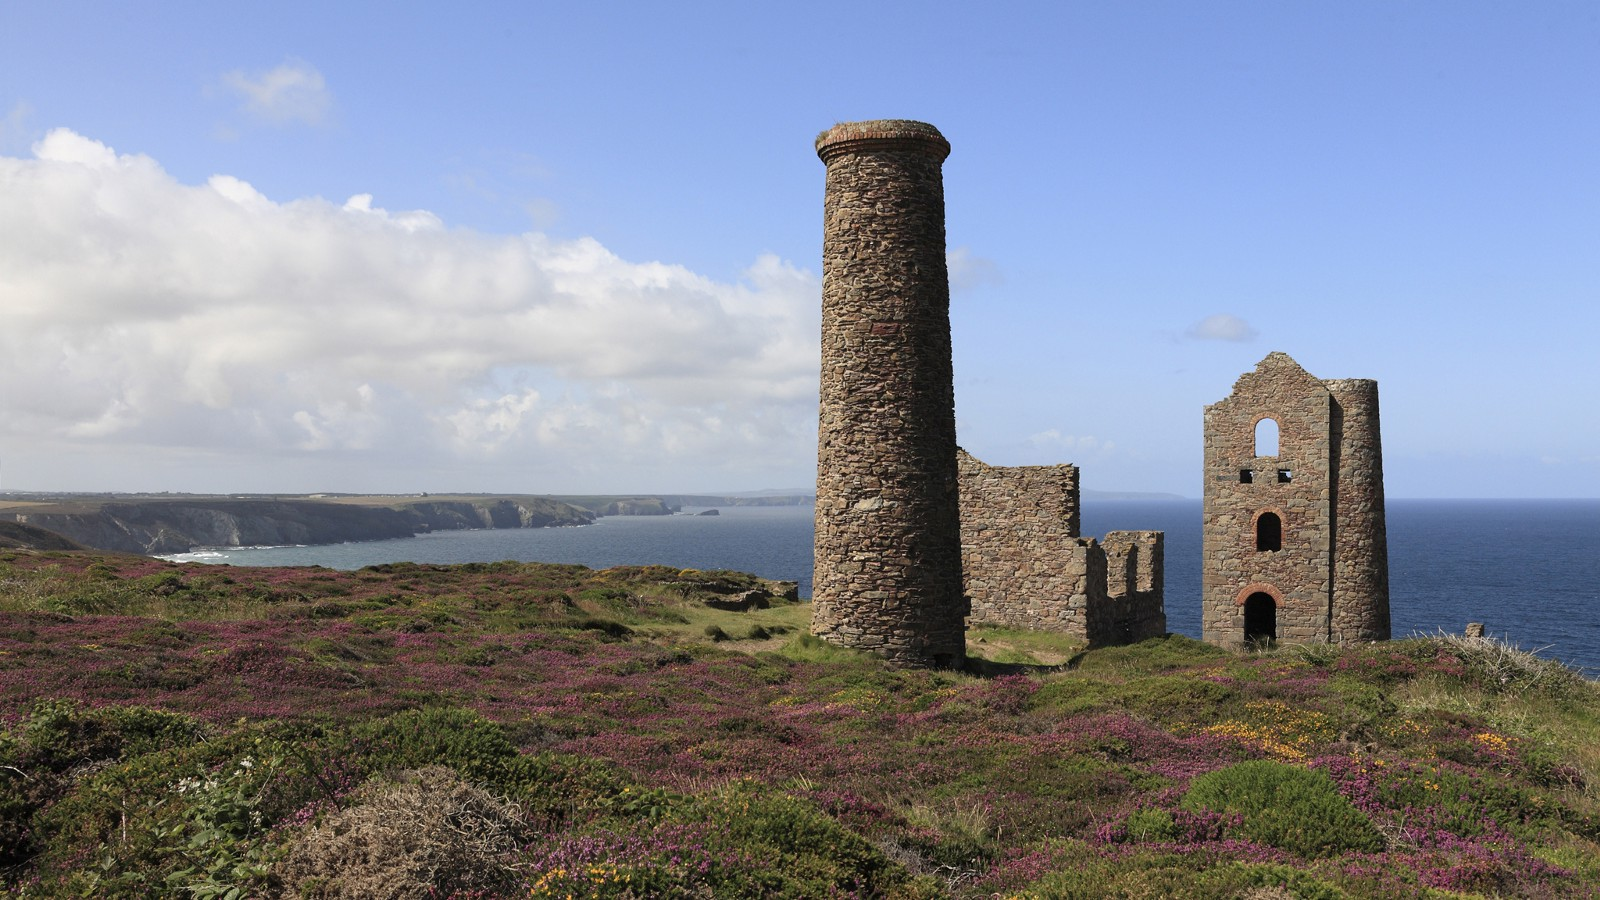 Ruin of Wheal Coates Tin Mine, near St. Agnes in Cornwall, England